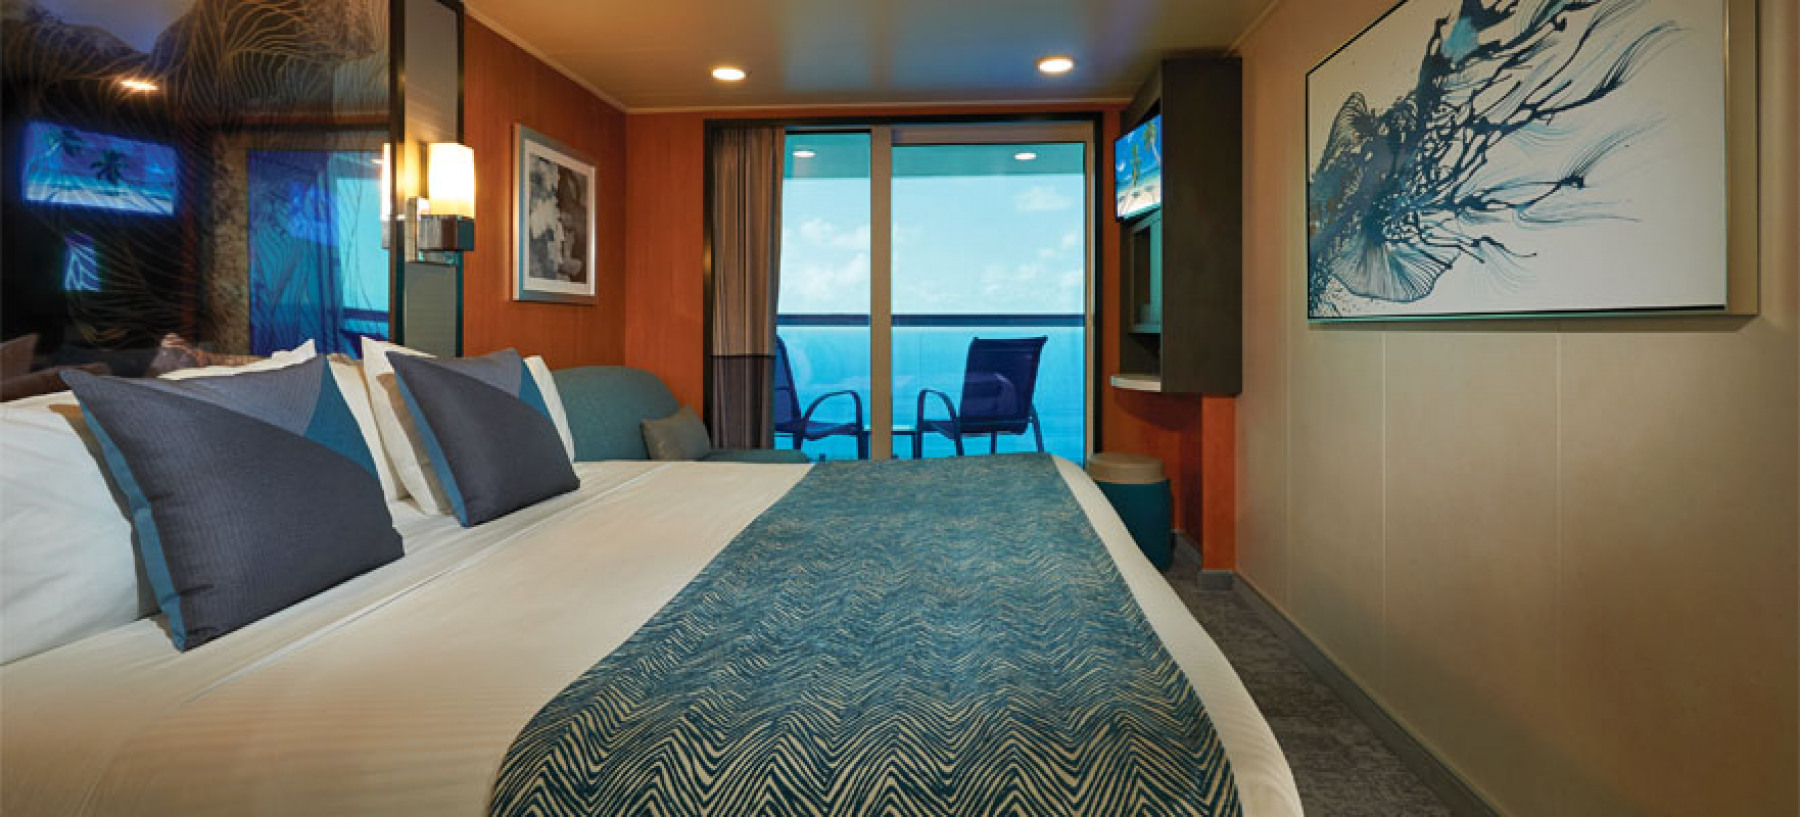 Norwegian Cruise Lines Norwegian Jade Accommodation Balcony.jpg